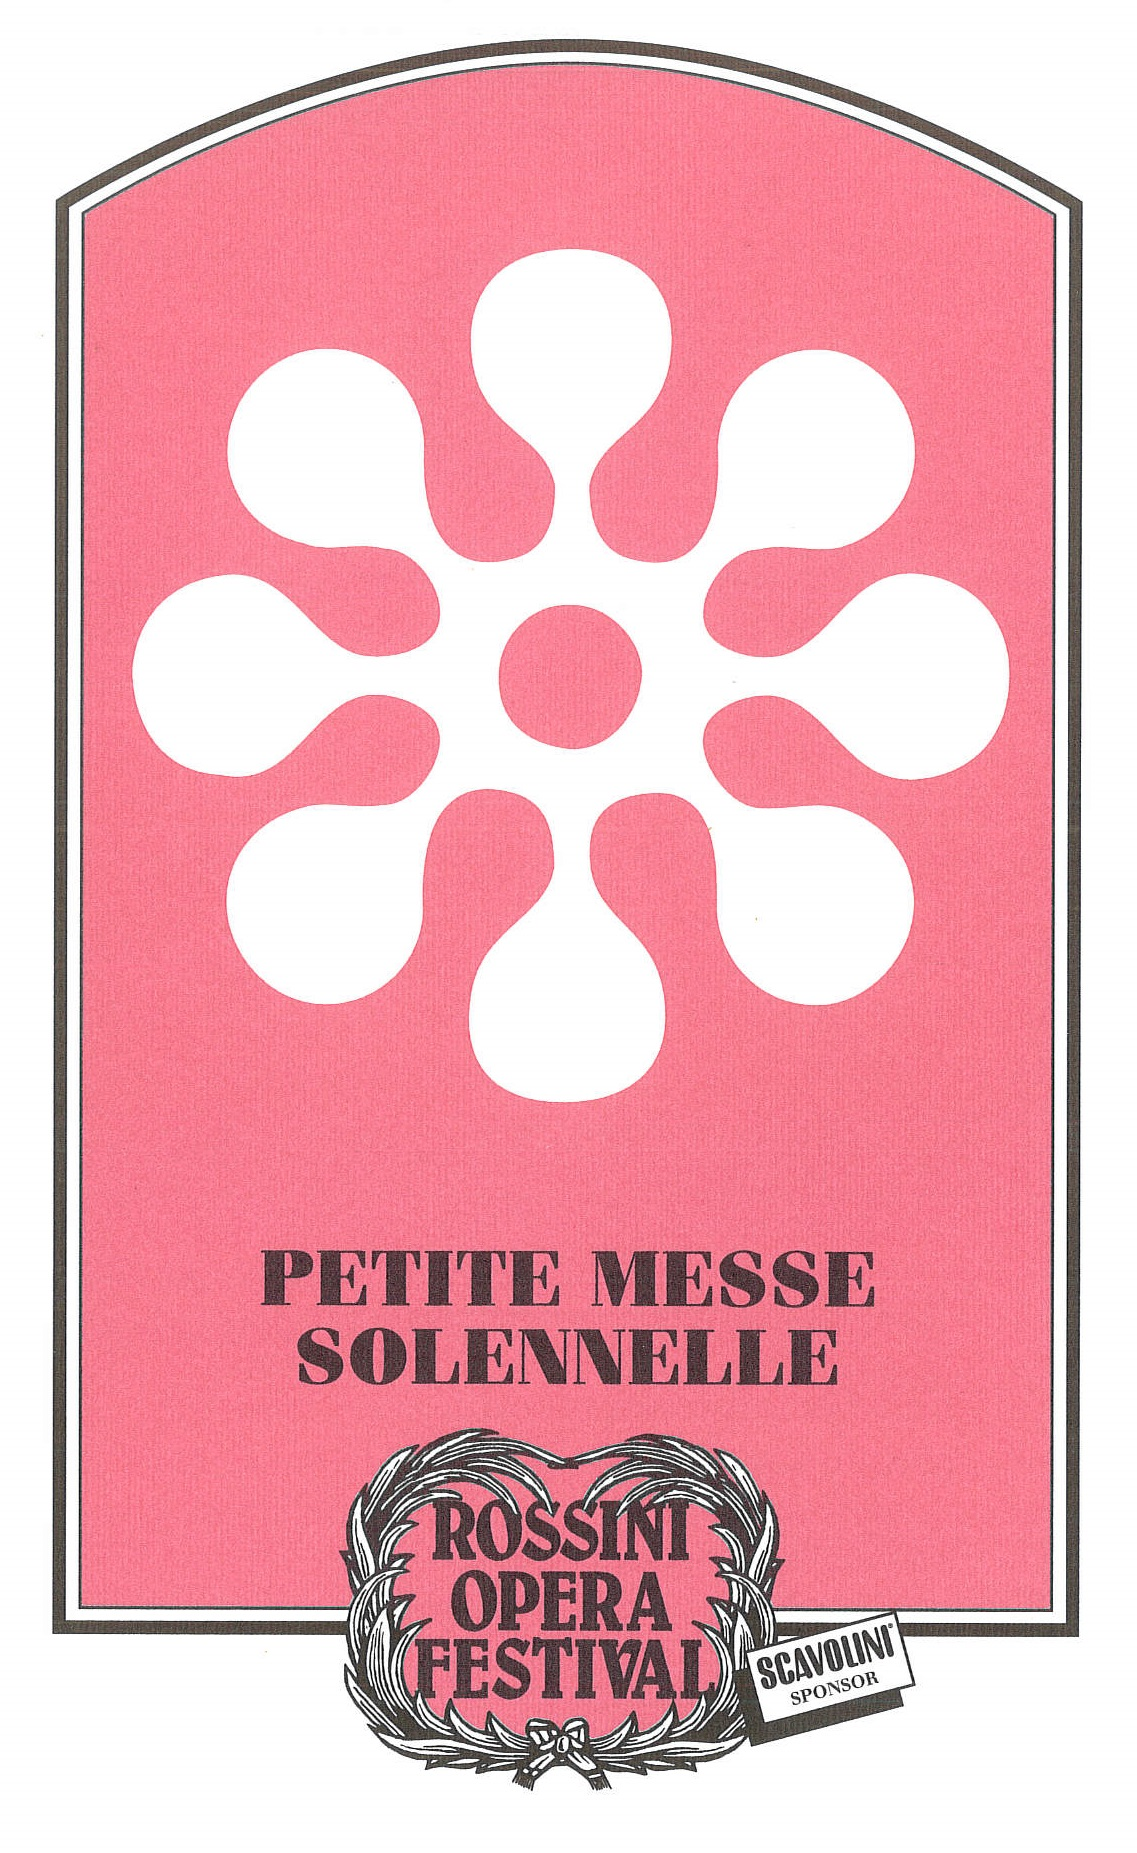 Petite Messe Solennelle 1997